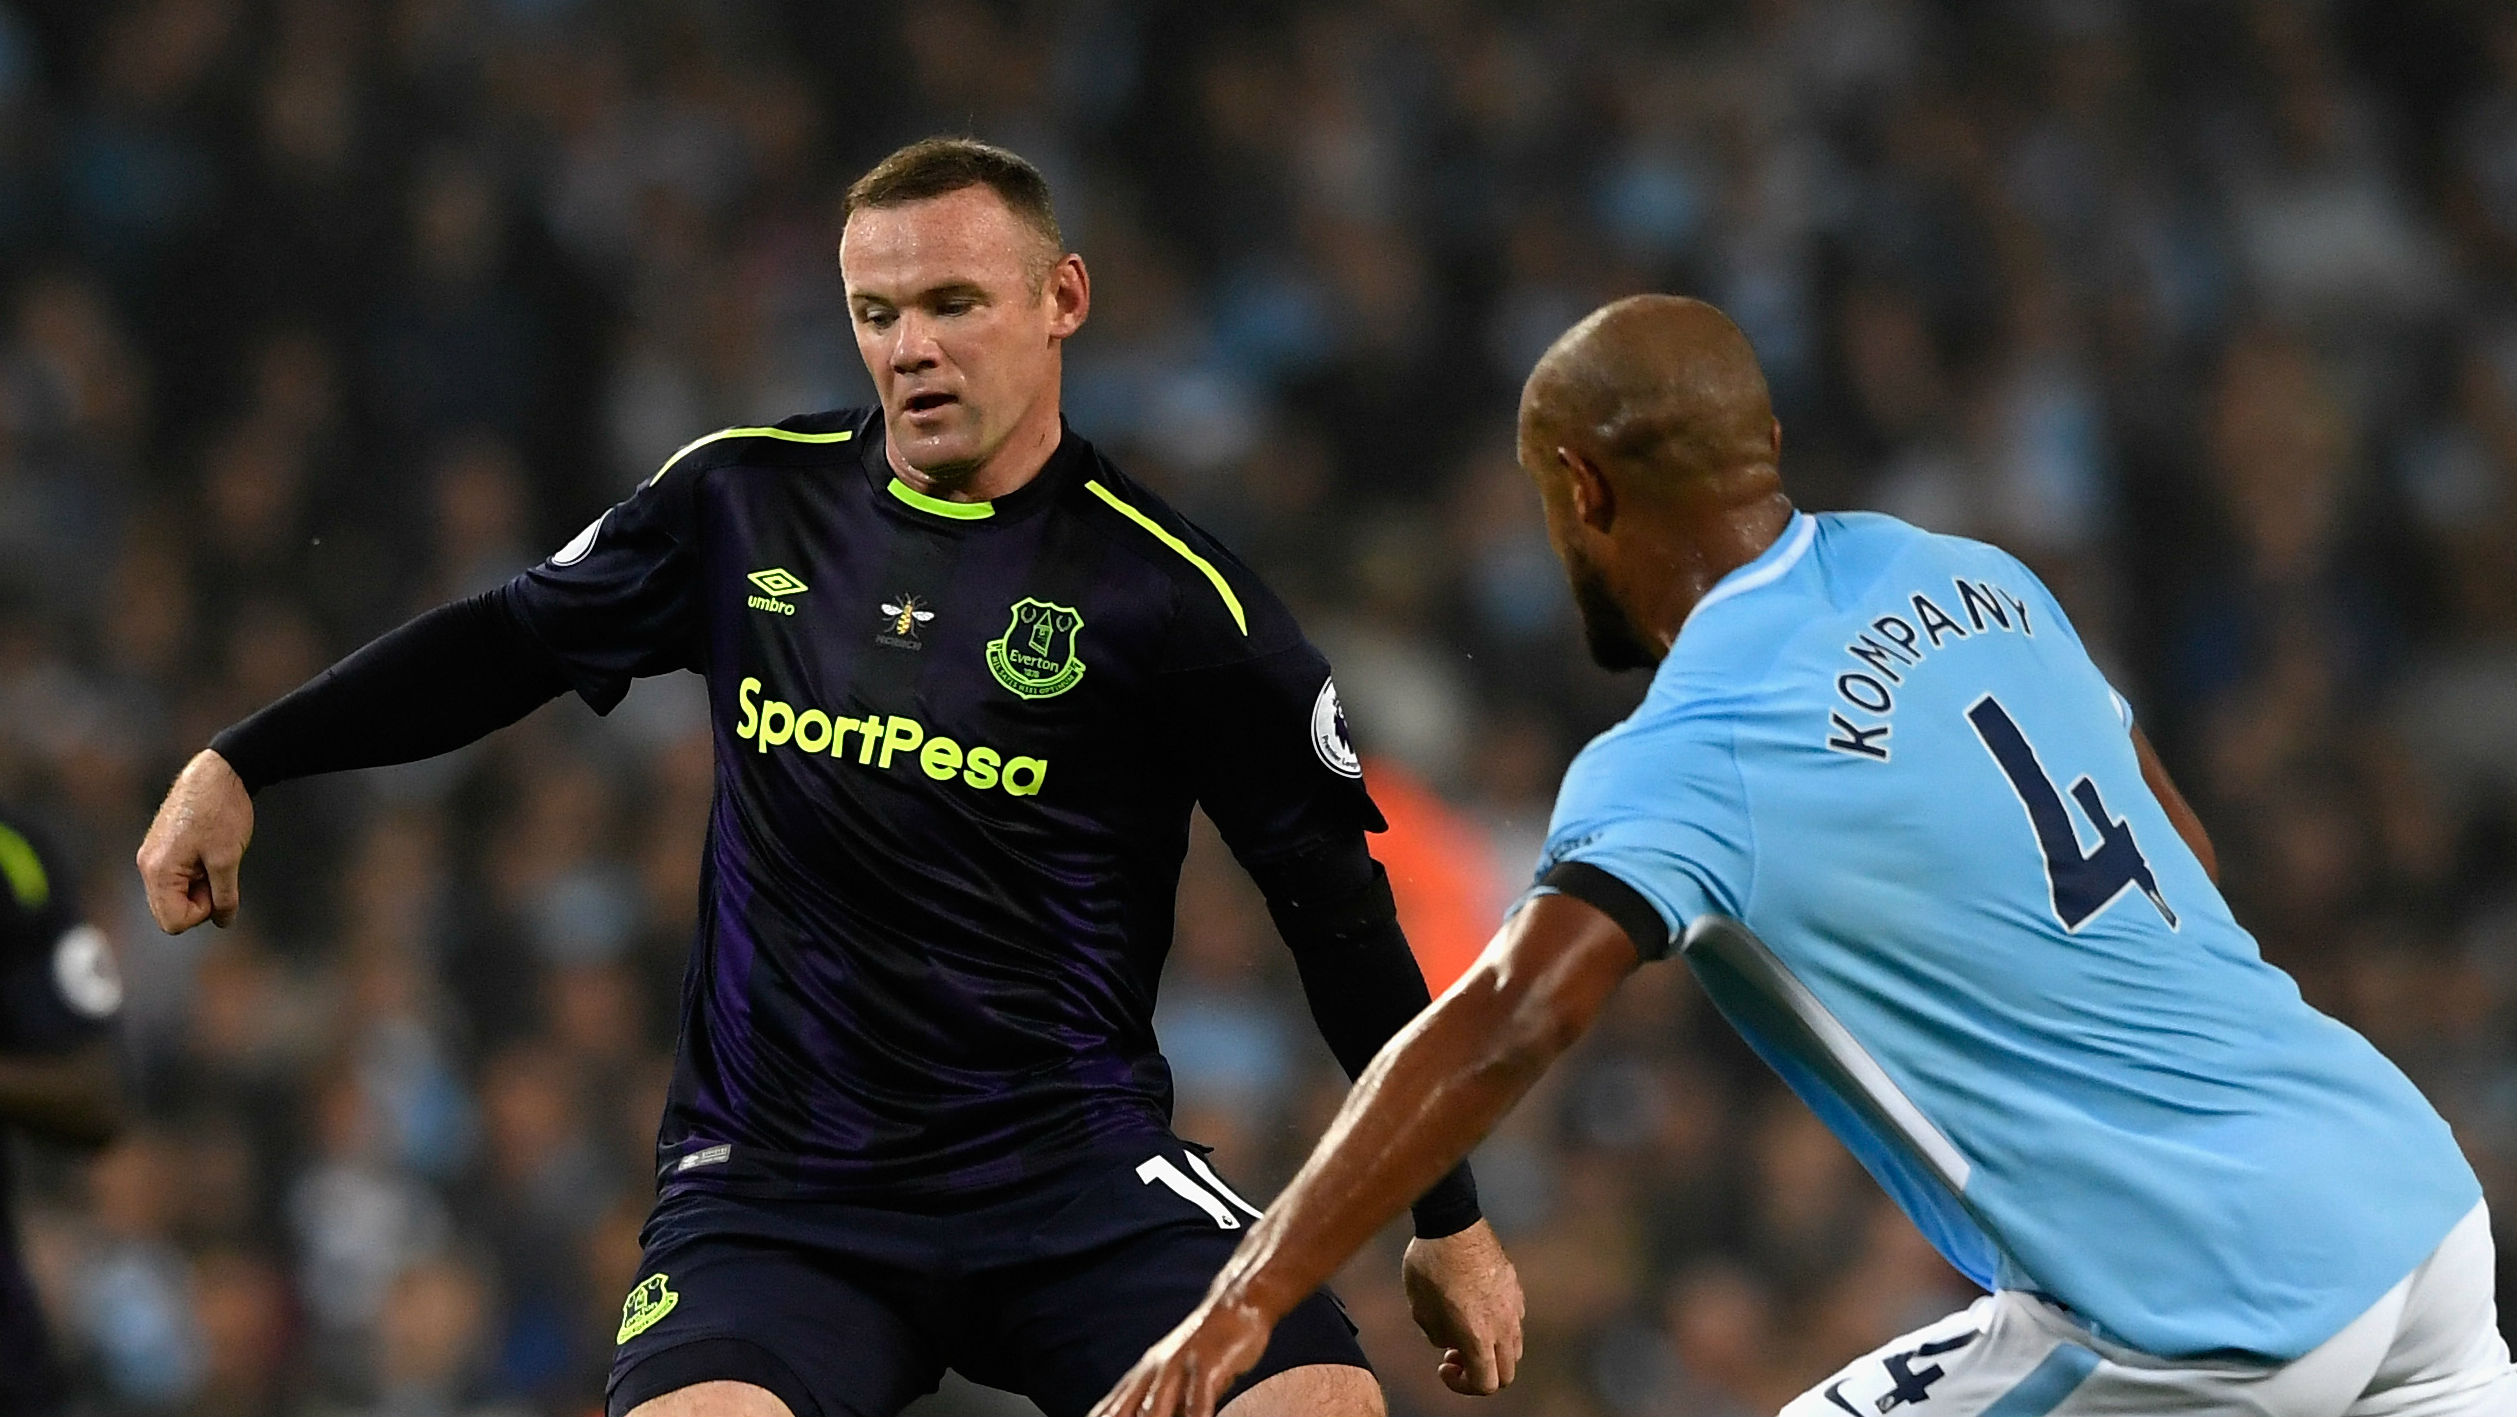 Premier-League-Tor! Wayne Rooney erreicht Meilenstein